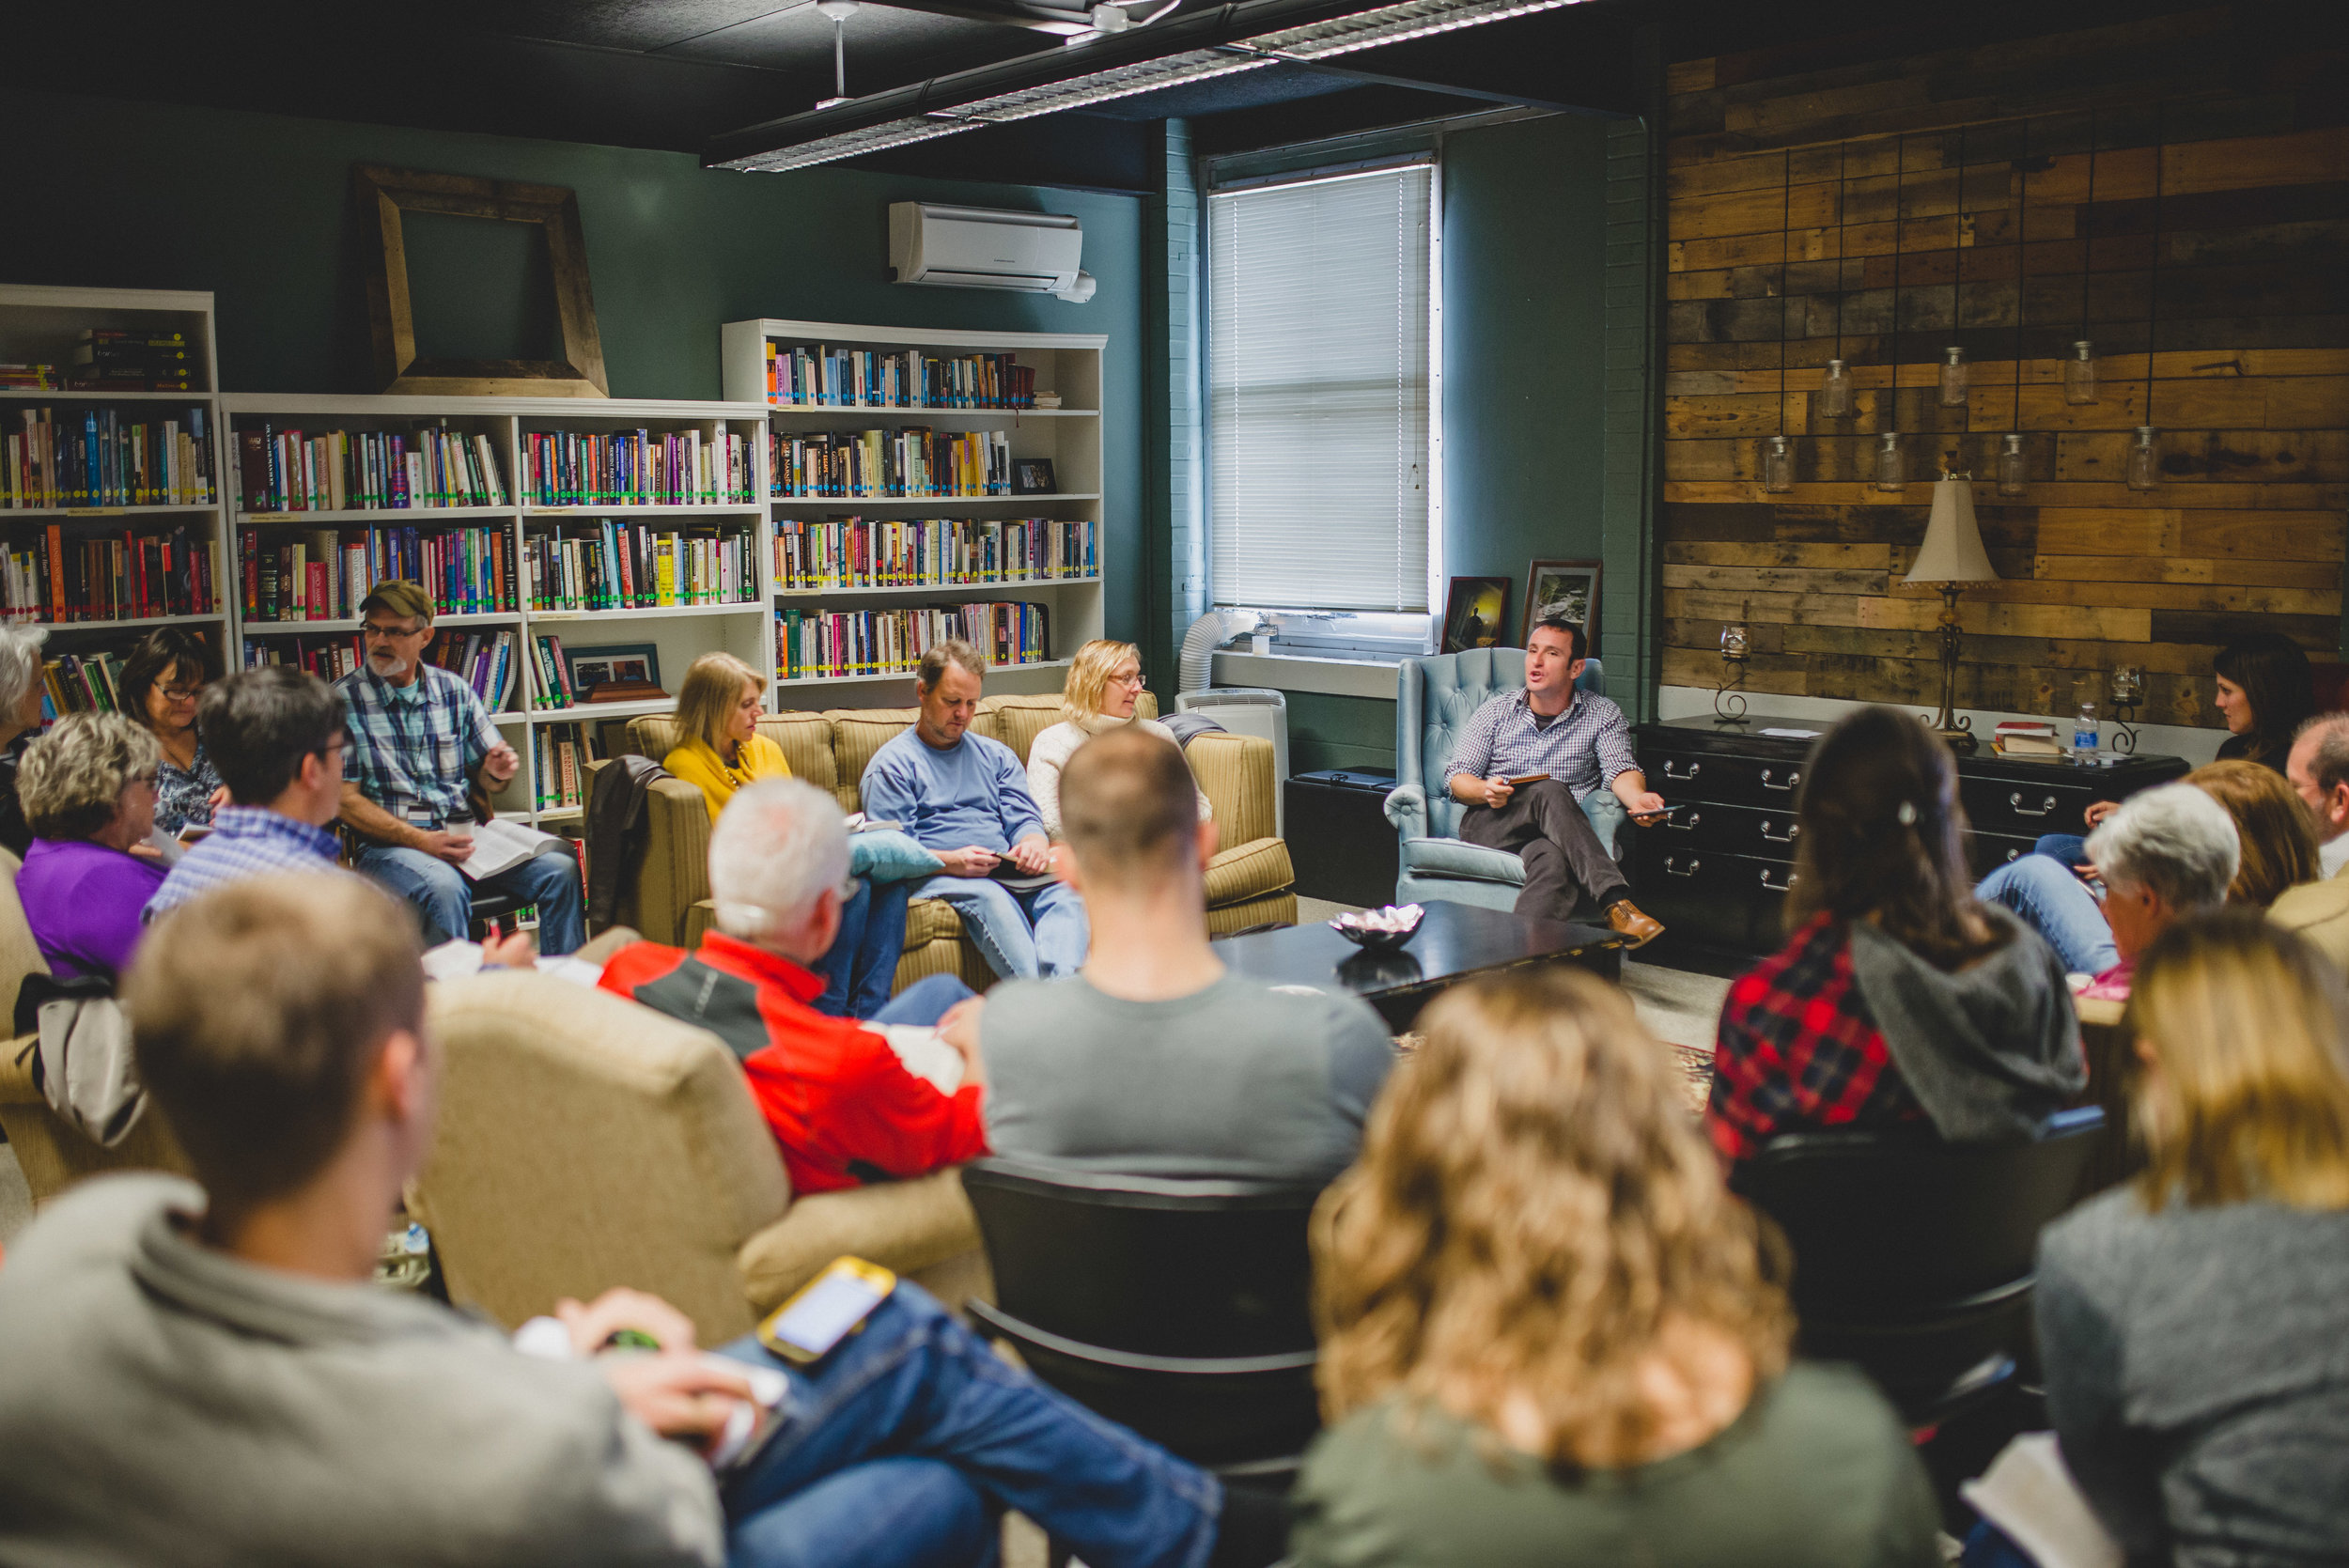 During the winter break, Institute Instructor Brandon Galford taught the adult track at Bible Talk 2016, a weekend of intensive study and discussion of the Bible and its relevance for the everyday life.